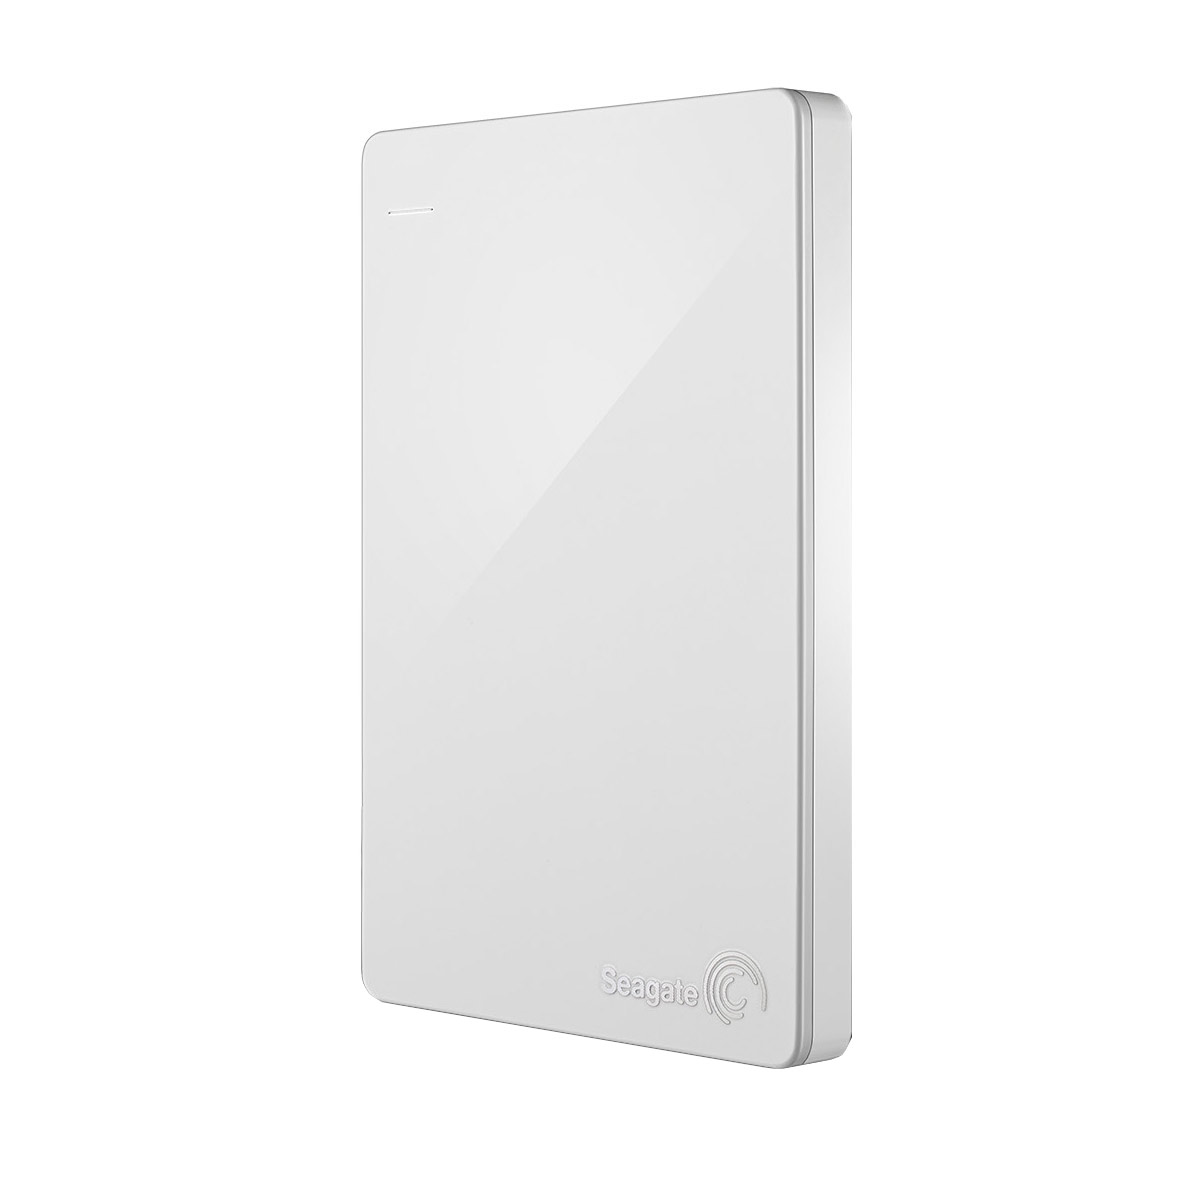 seagate backup plus slim 1 to blanc usb 3 0 recovery disque dur externe seagate technology. Black Bedroom Furniture Sets. Home Design Ideas